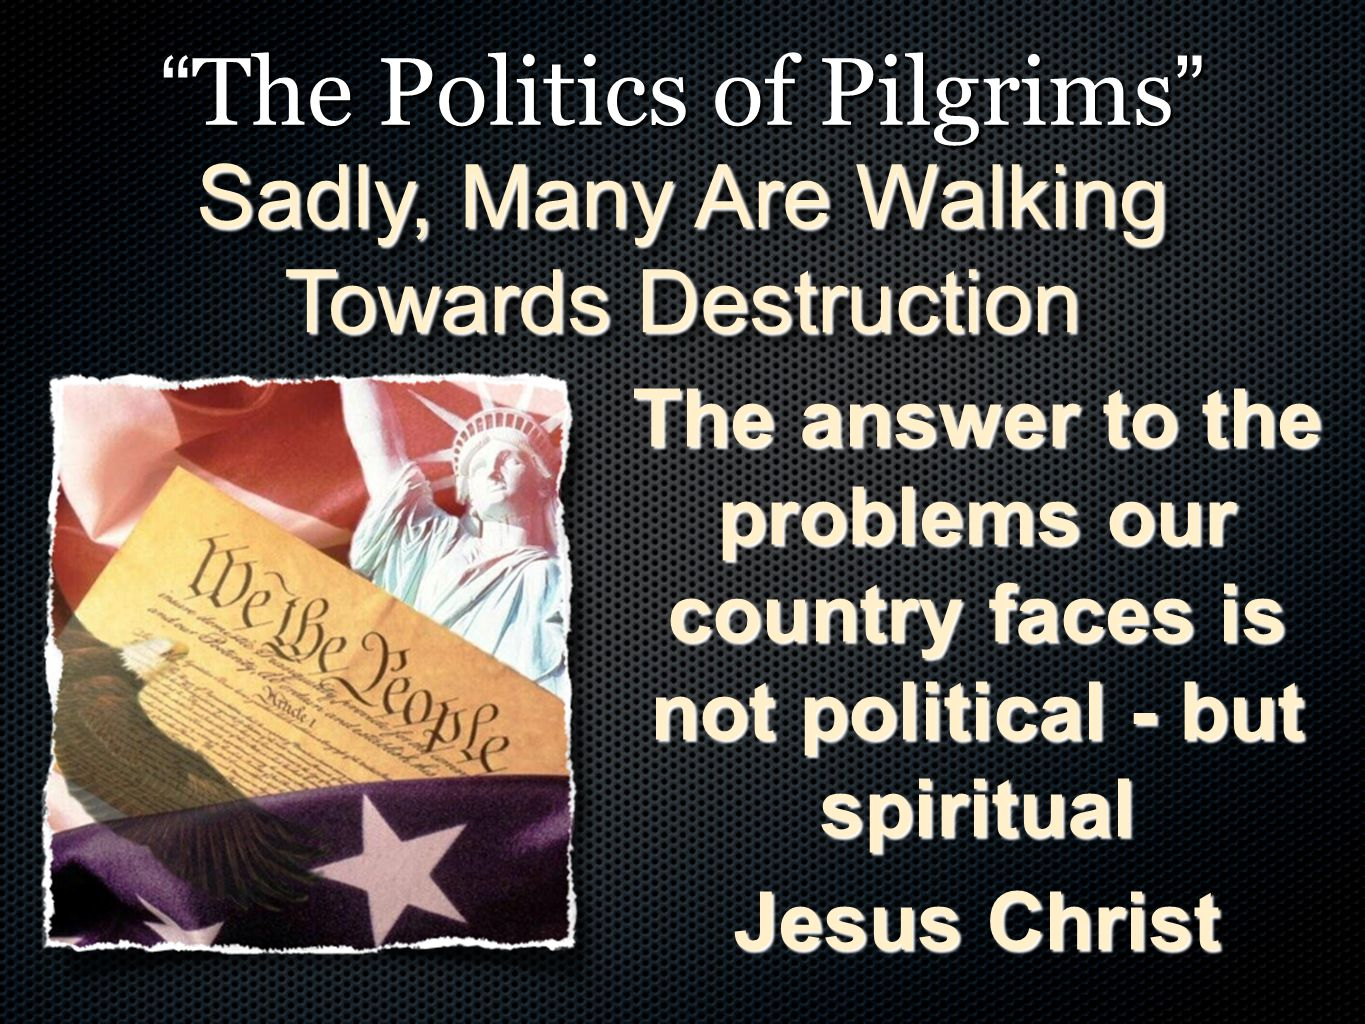 """"""" The Politics of Pilgrims """" The answer to the problems our country faces is not political - but spiritual Jesus Christ Sadly, Many Are Walking Toward"""